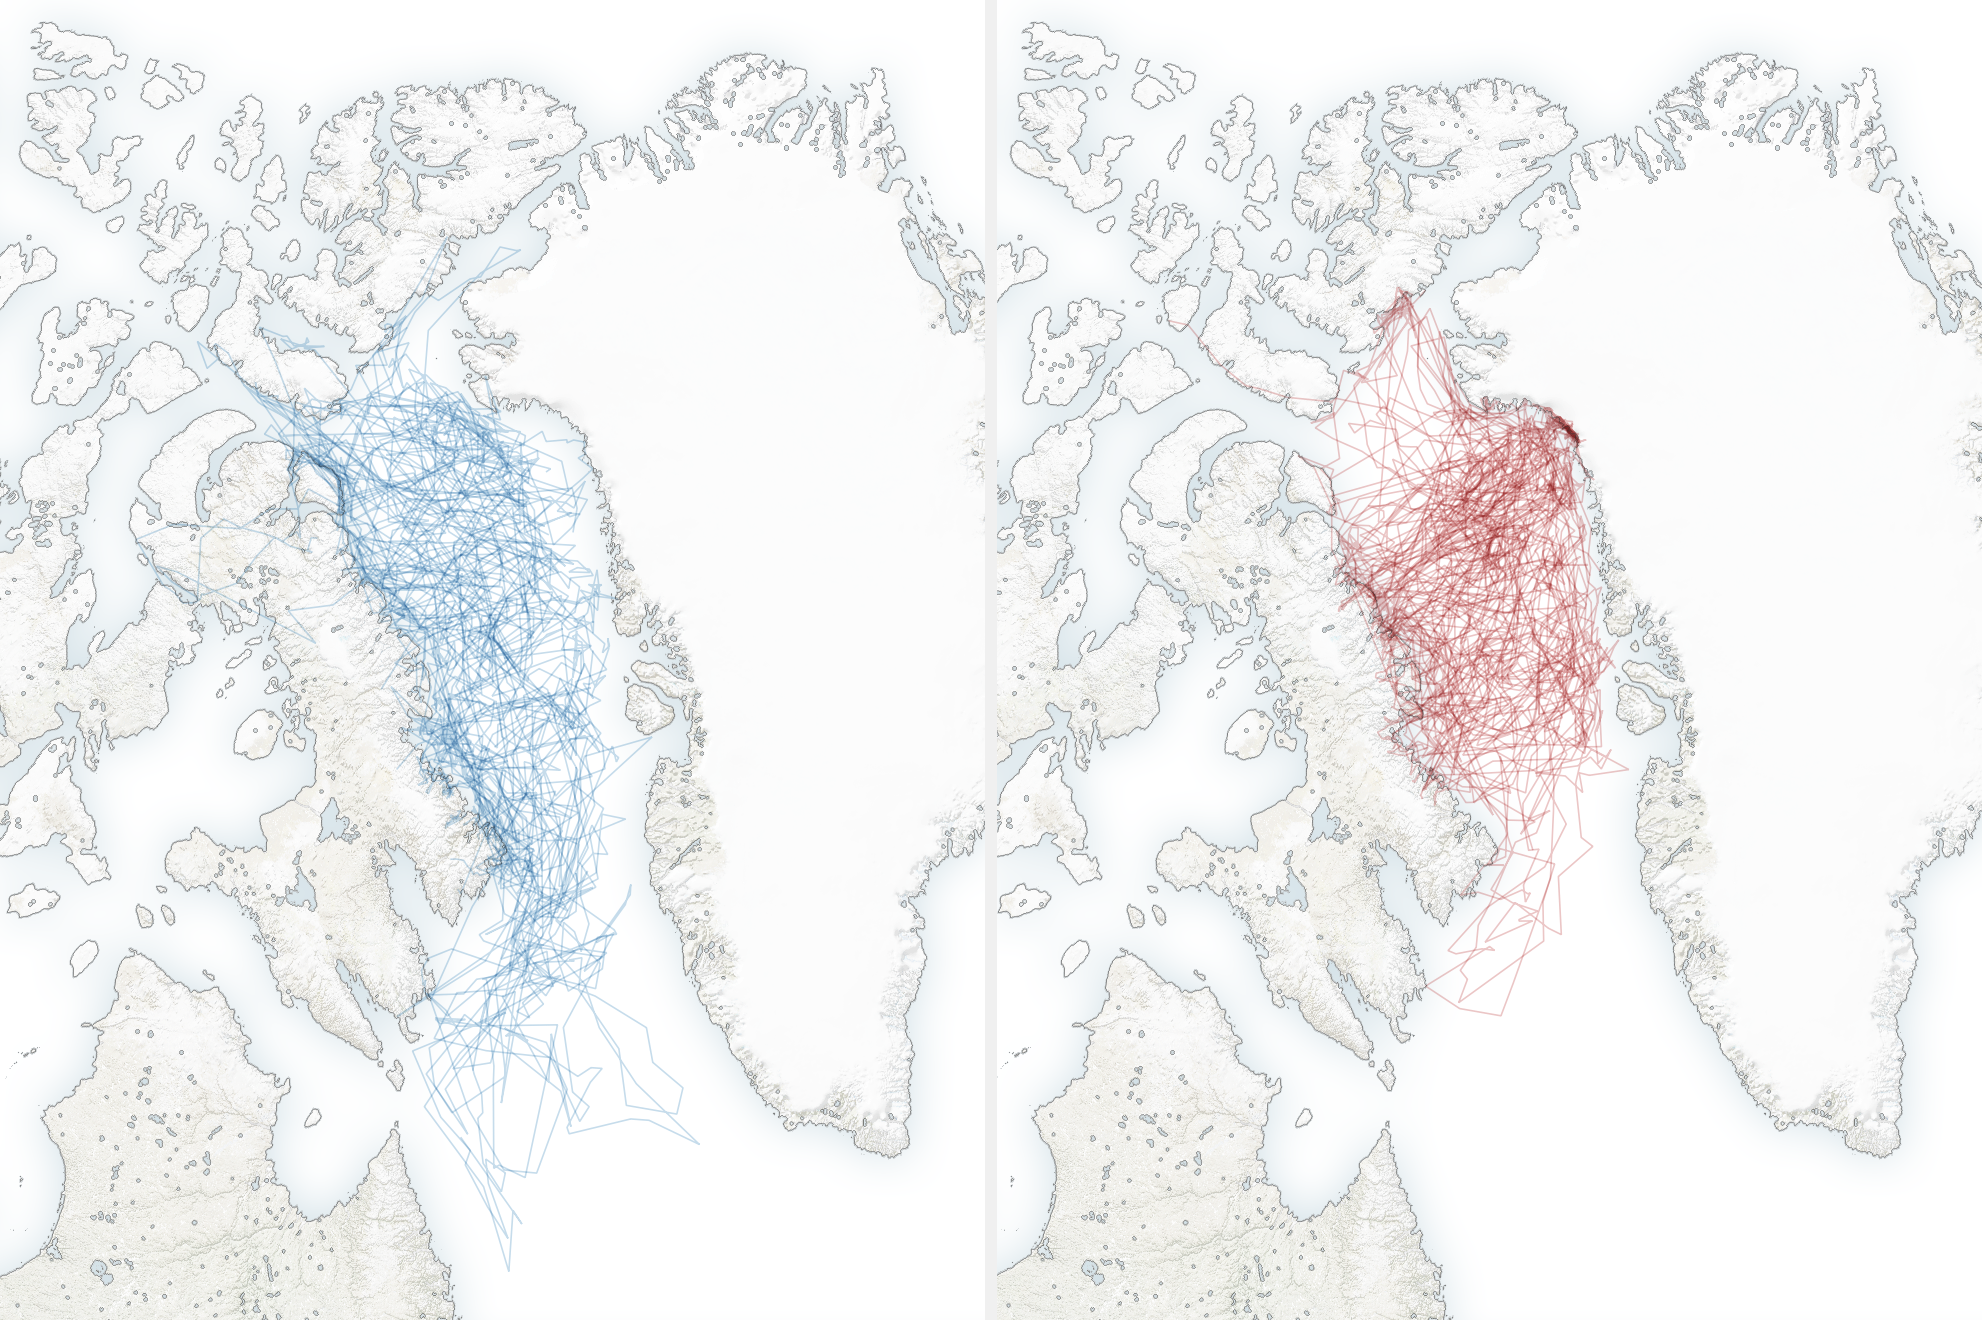 The map on the left shows a wider range of polar bear movement over the bay than the more recent map on the right